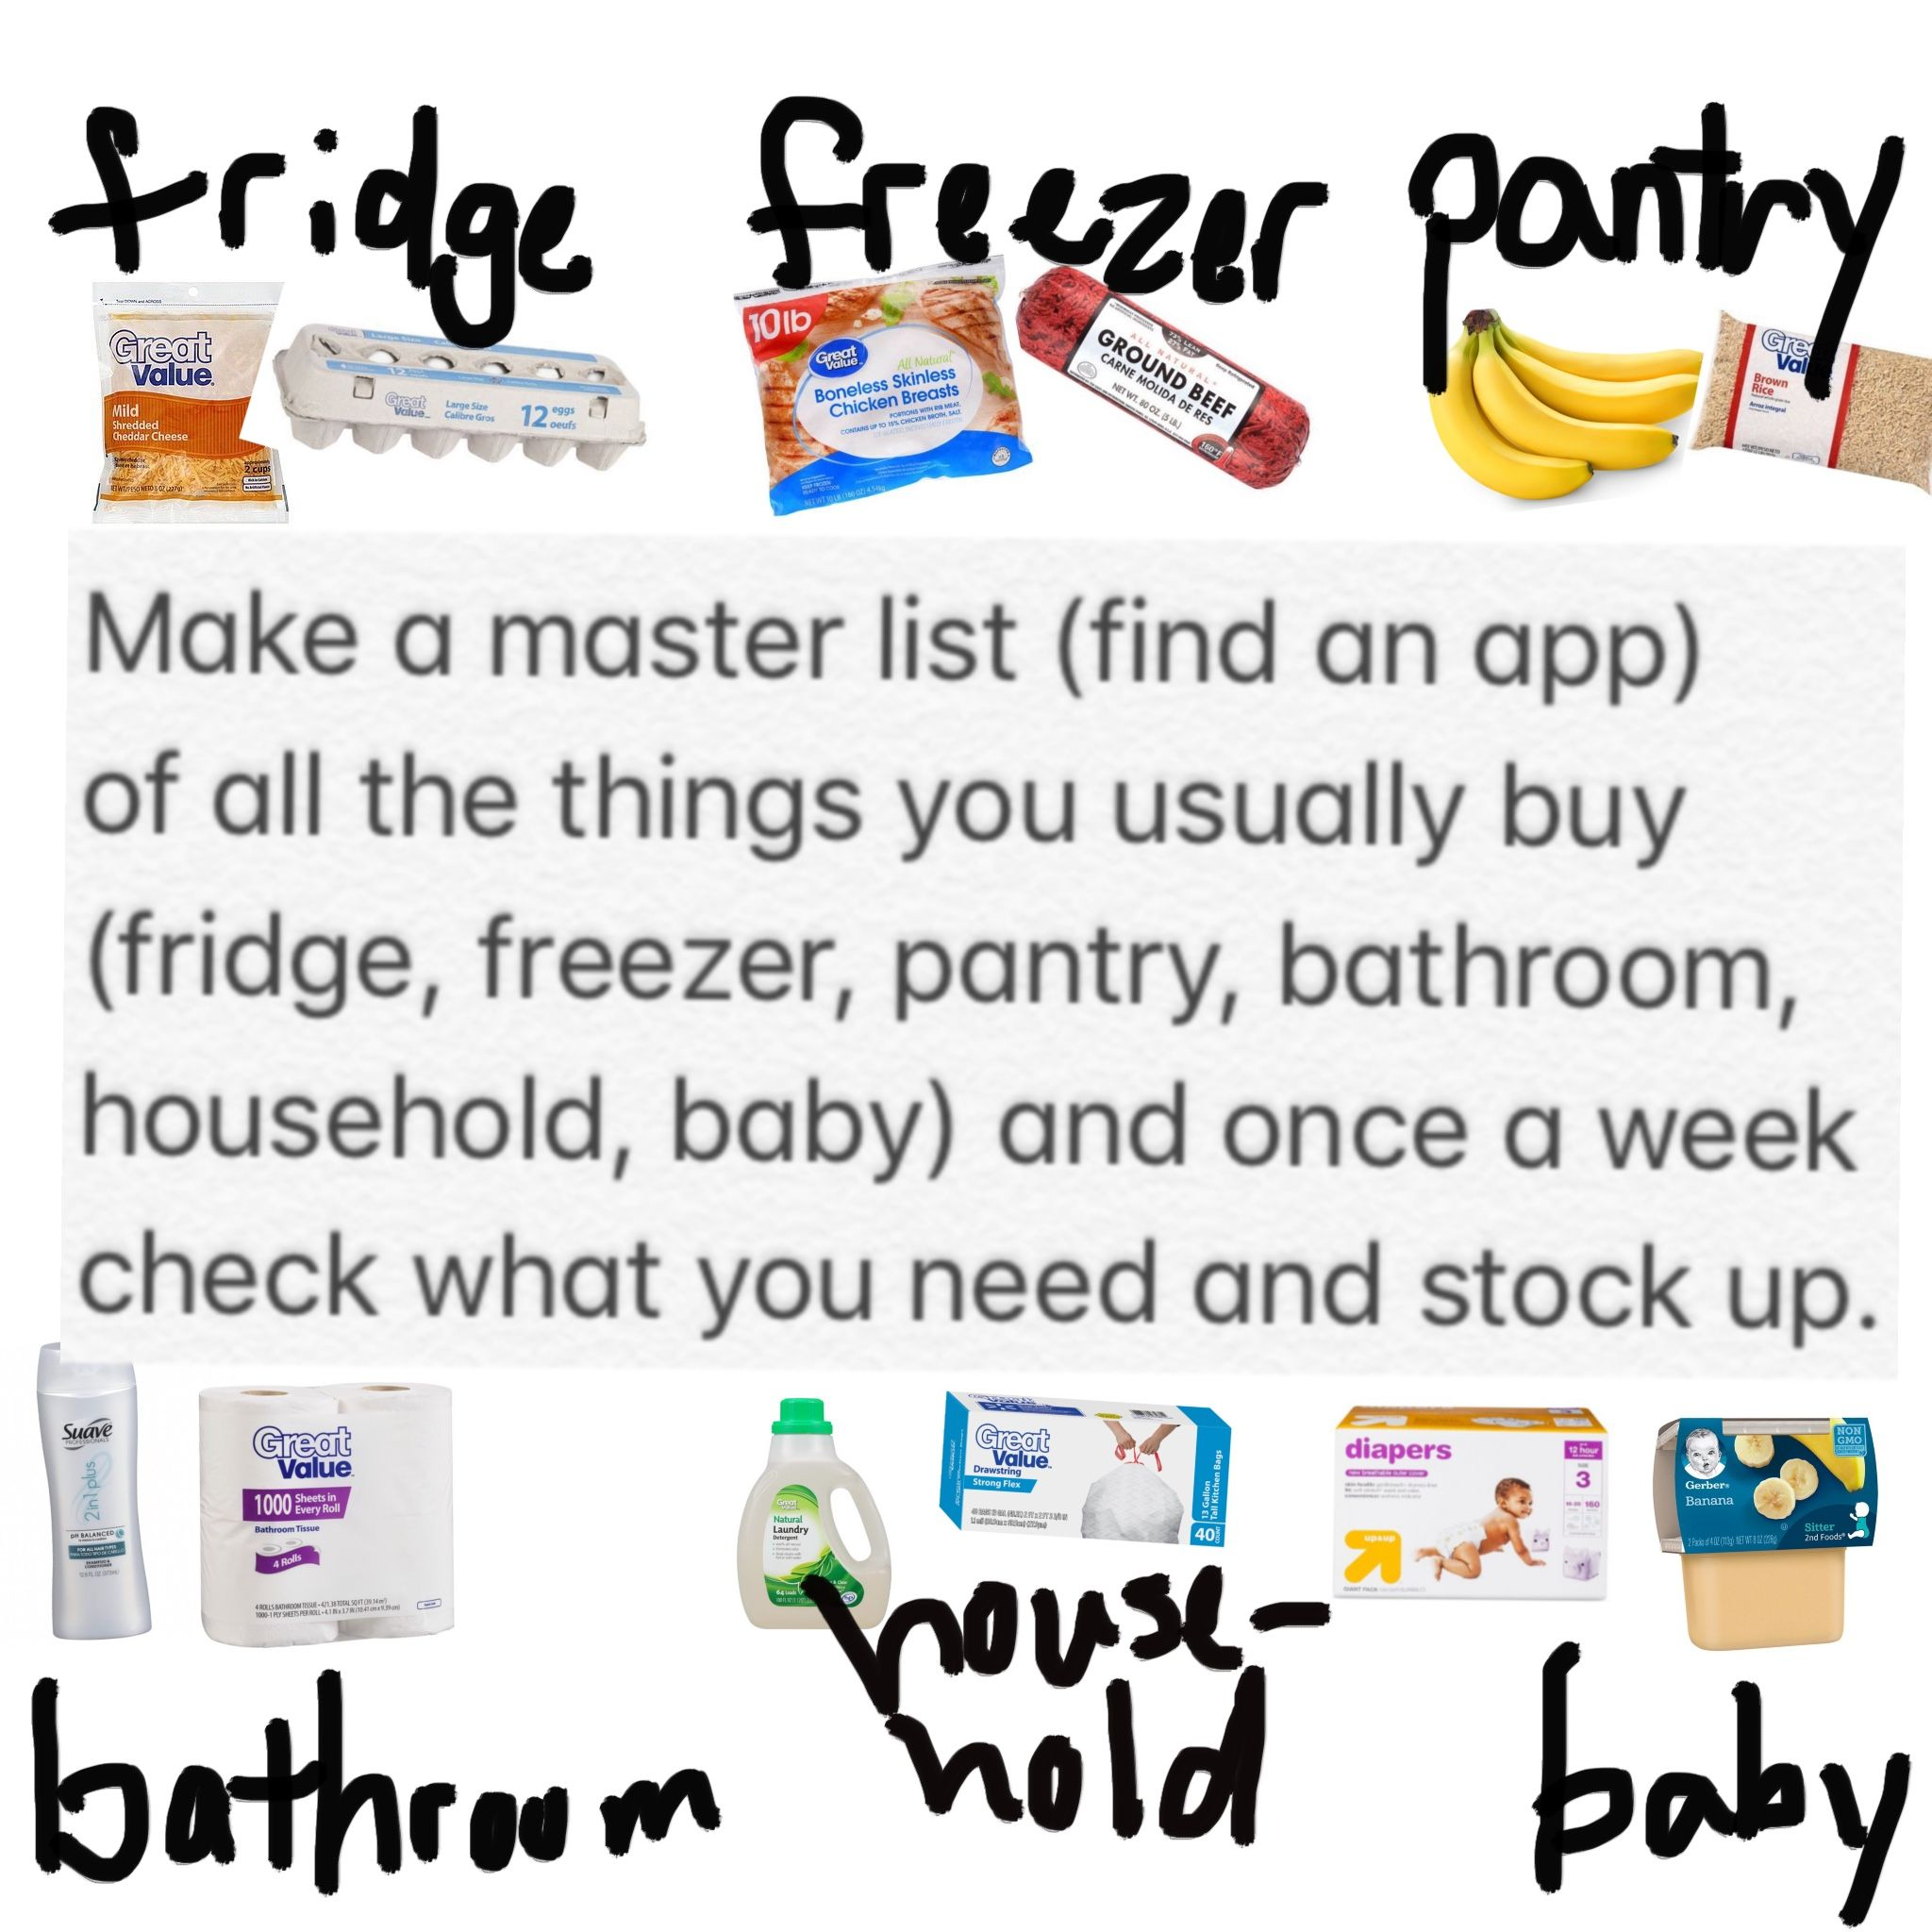 Make a master list (find an app) of all the things you usually buy ...